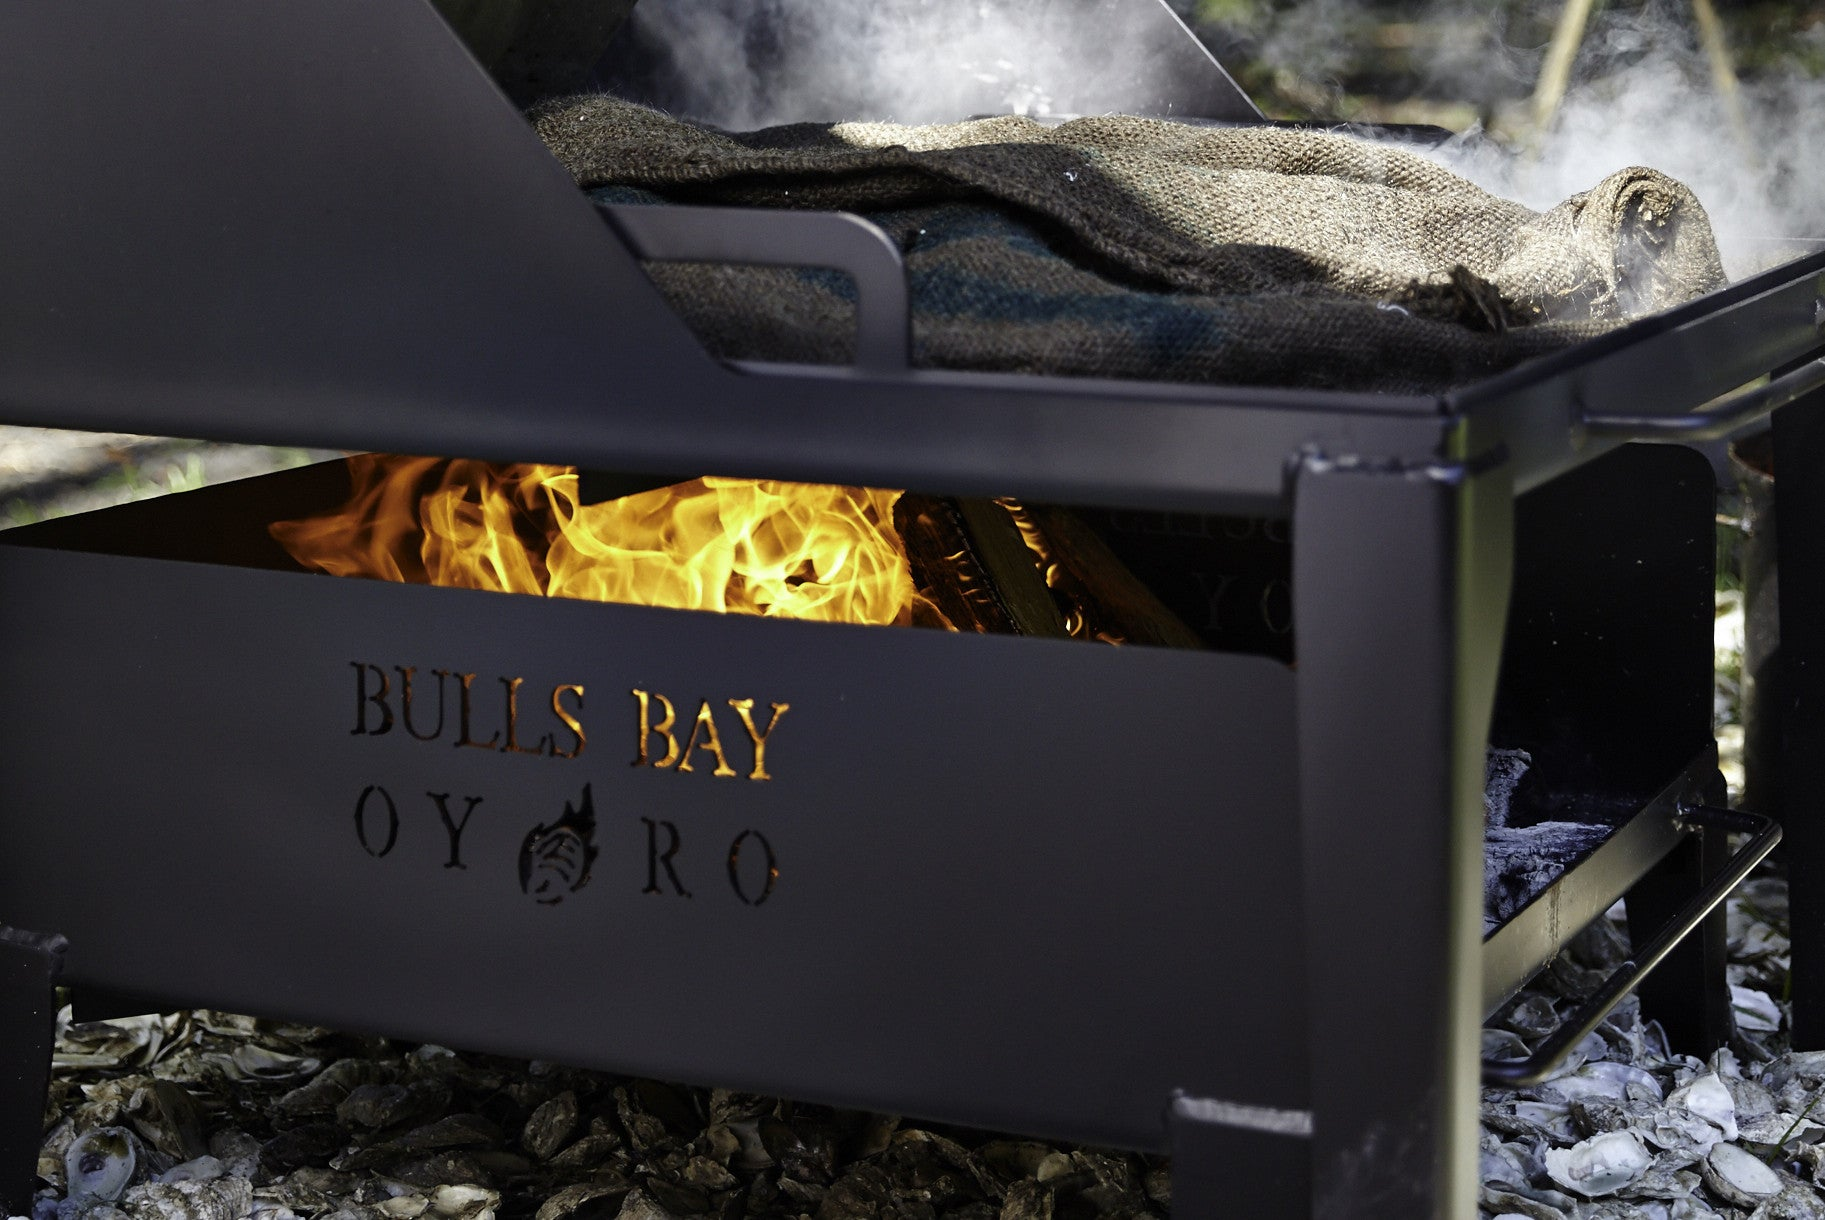 The OYRO Cooker